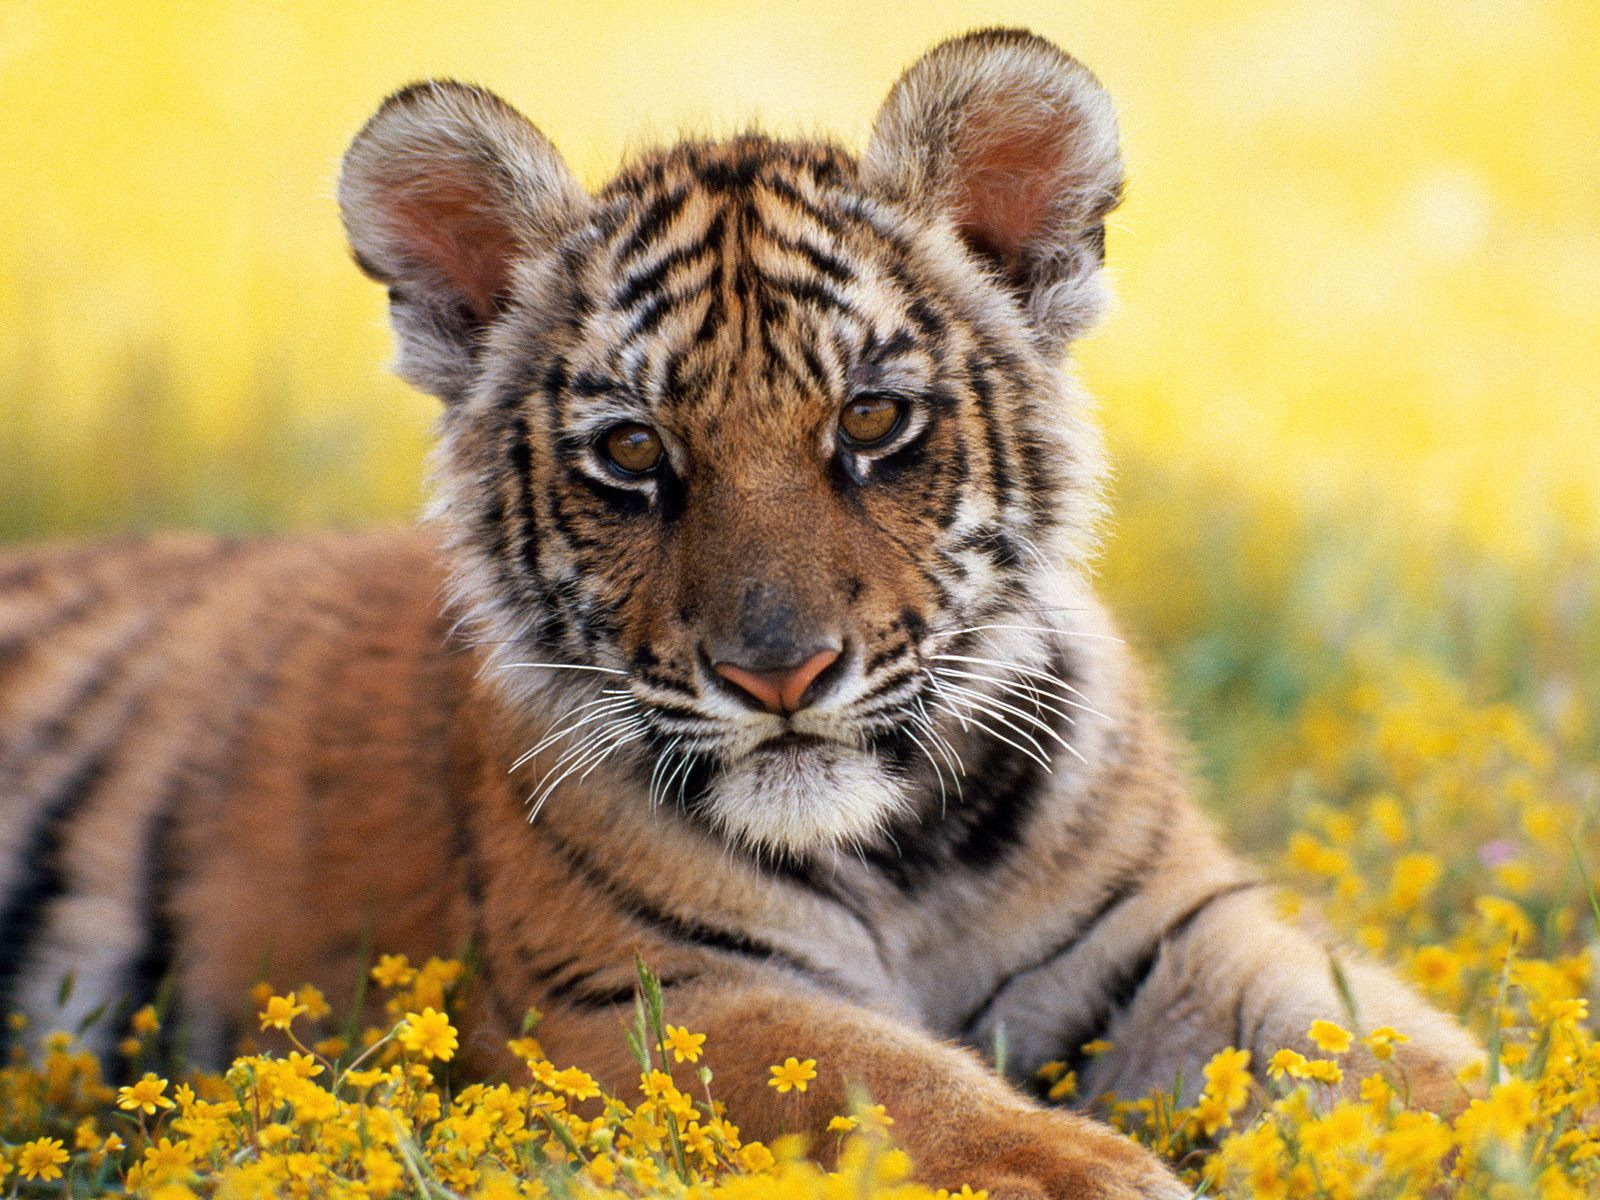 One Pic: Cute Baby Tiger Wallpaper